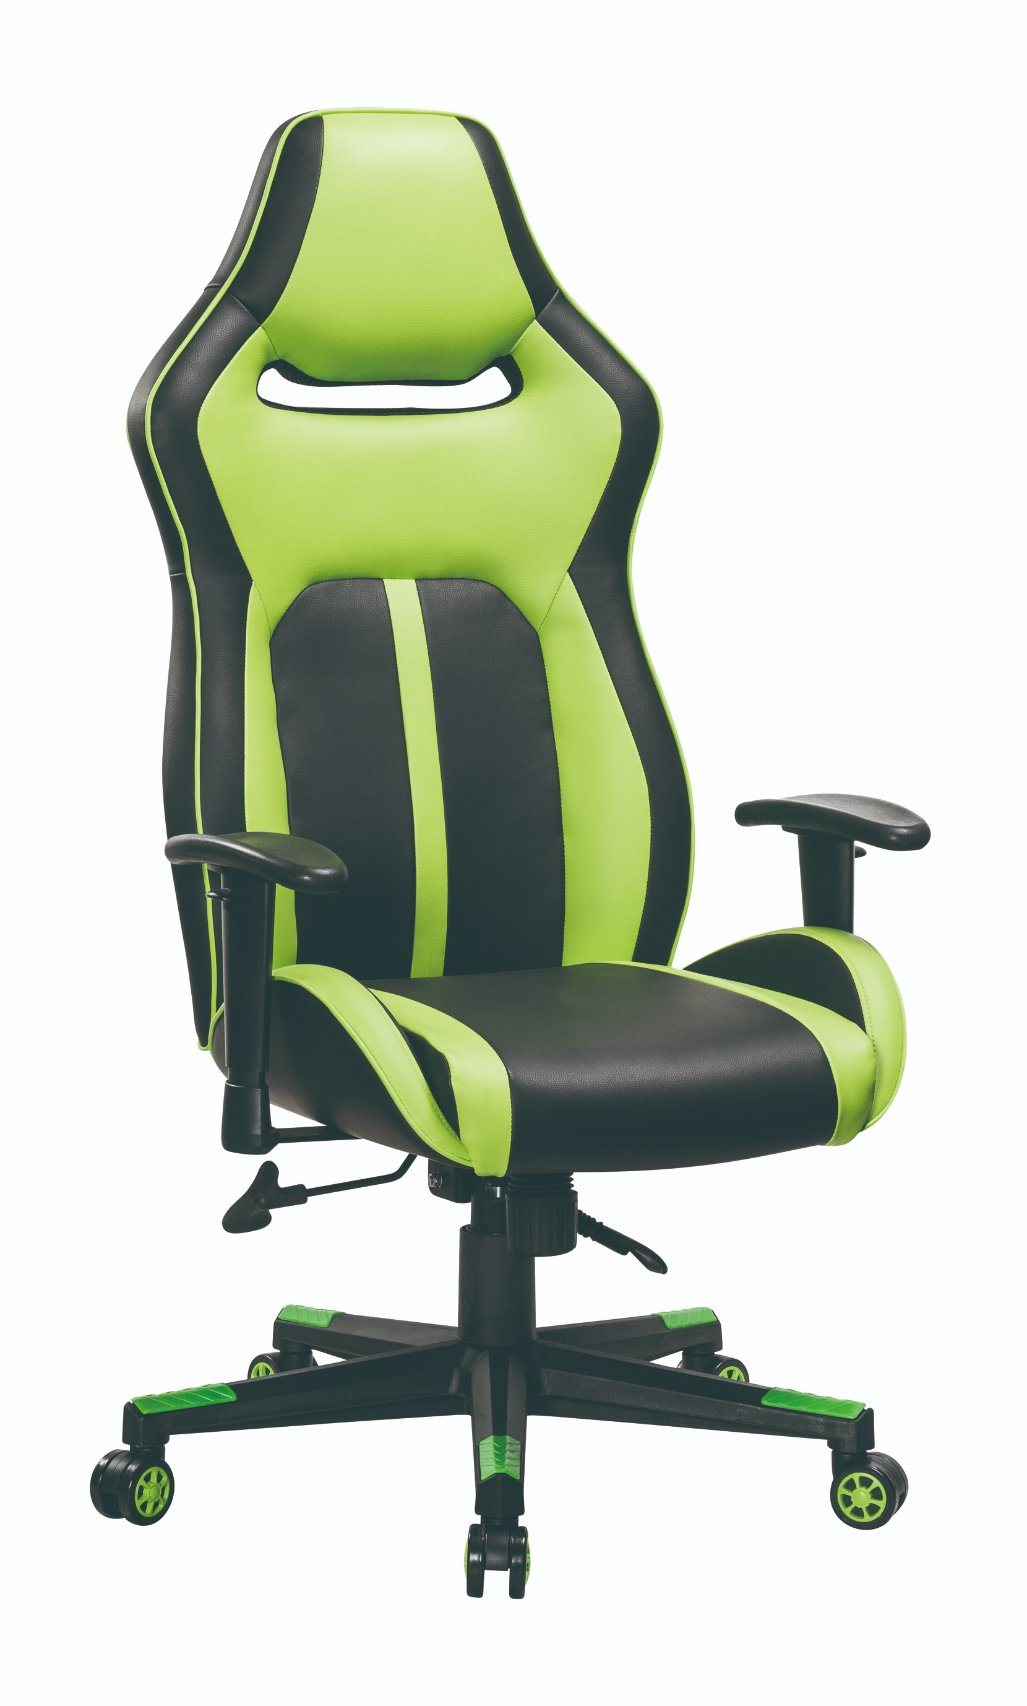 Pleasing Hot Item Gaming Chairs Near Me Gaming Recliner Andrewgaddart Wooden Chair Designs For Living Room Andrewgaddartcom